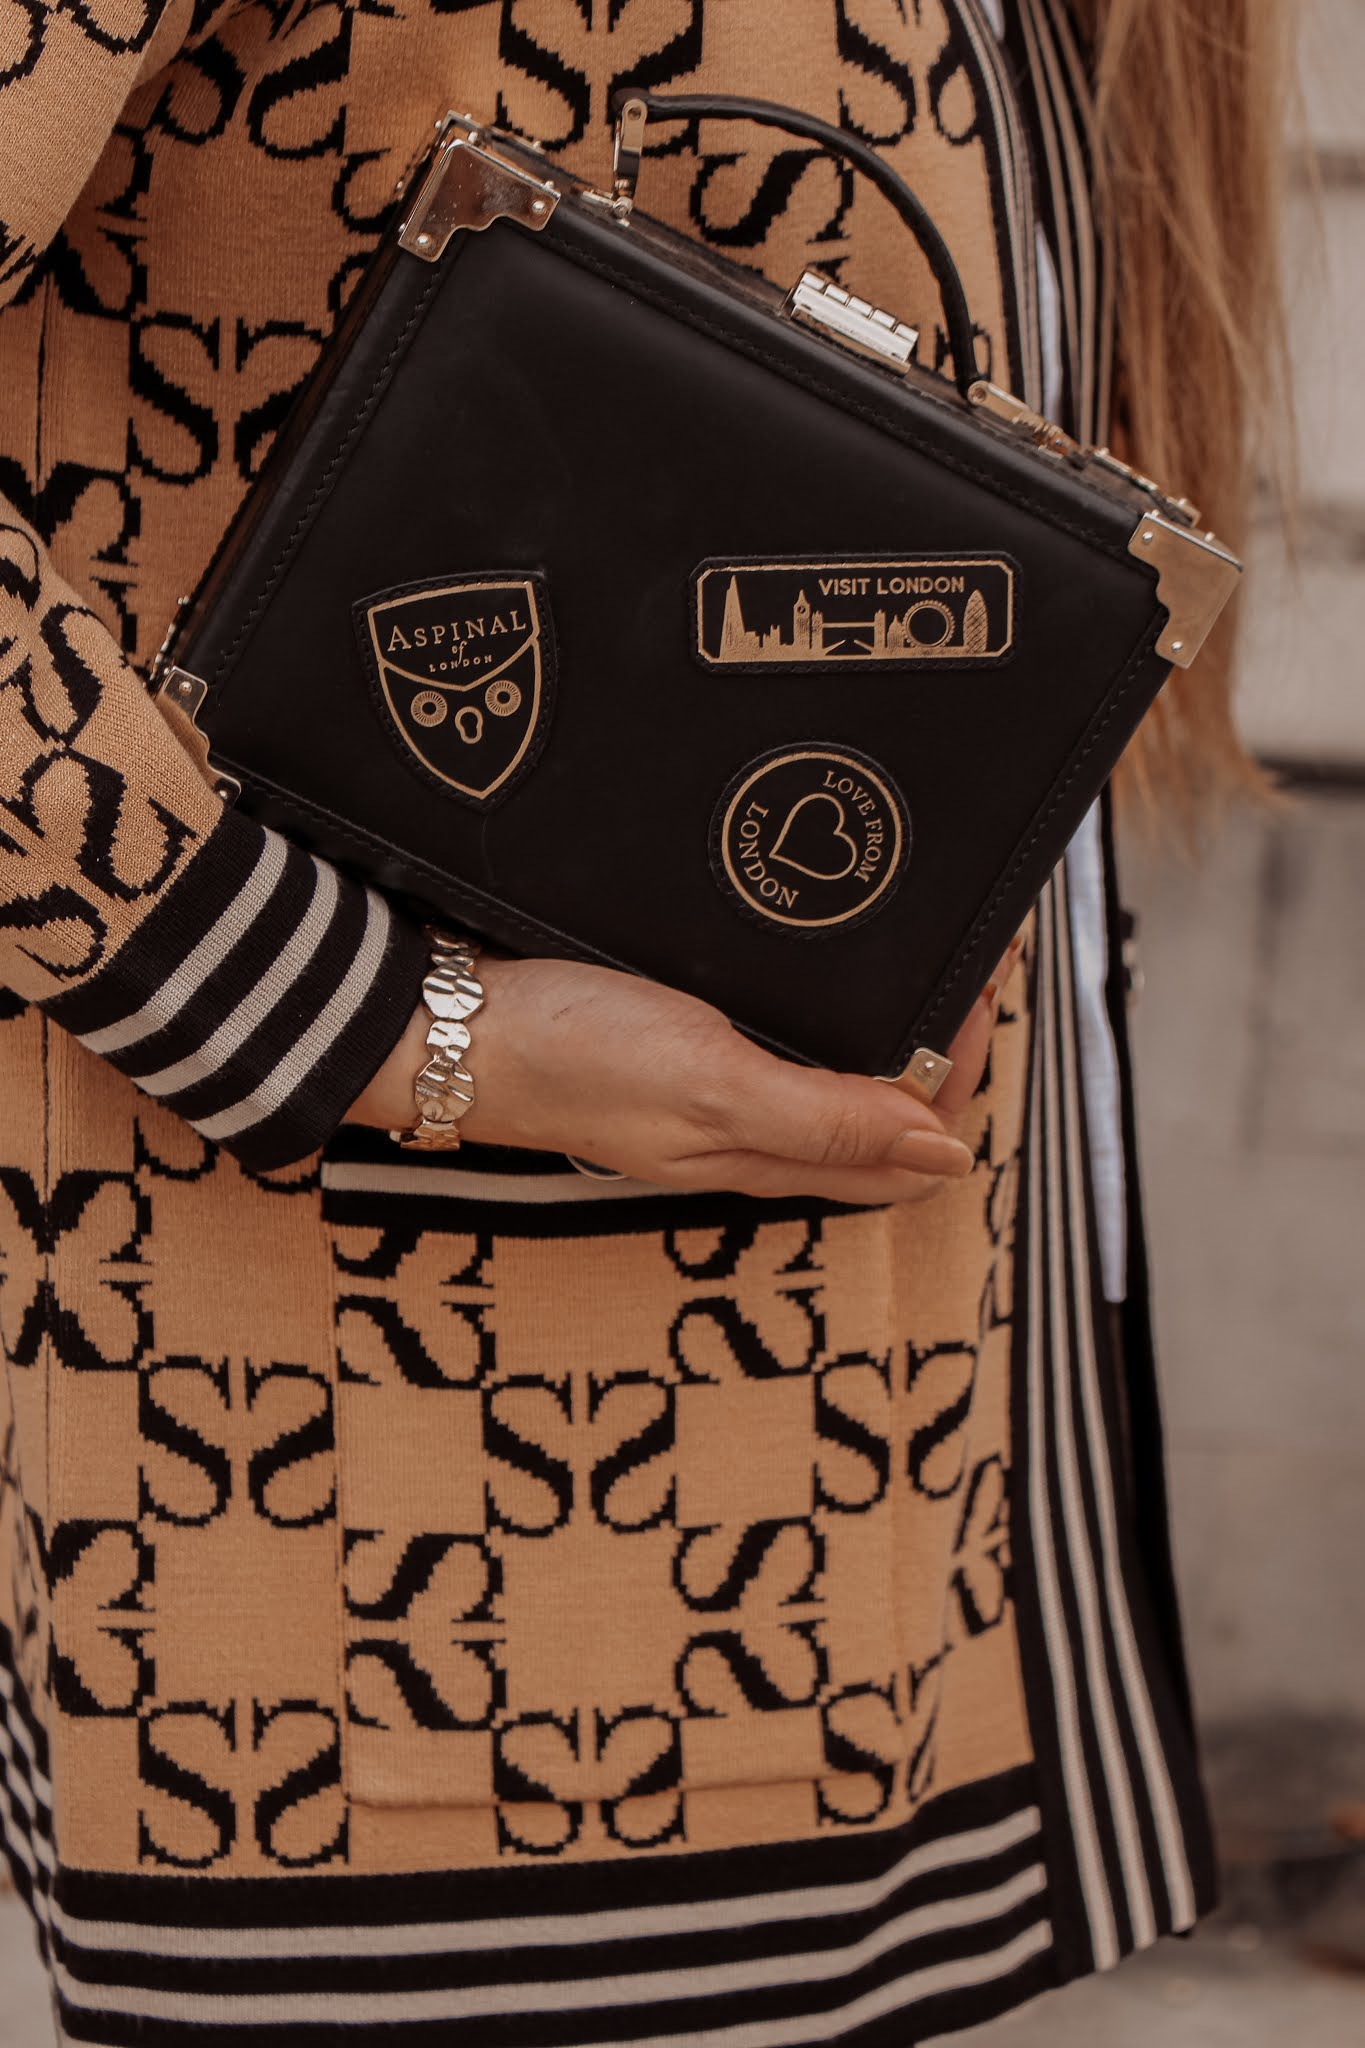 Aspinal of London Trunk Black Patches Bag